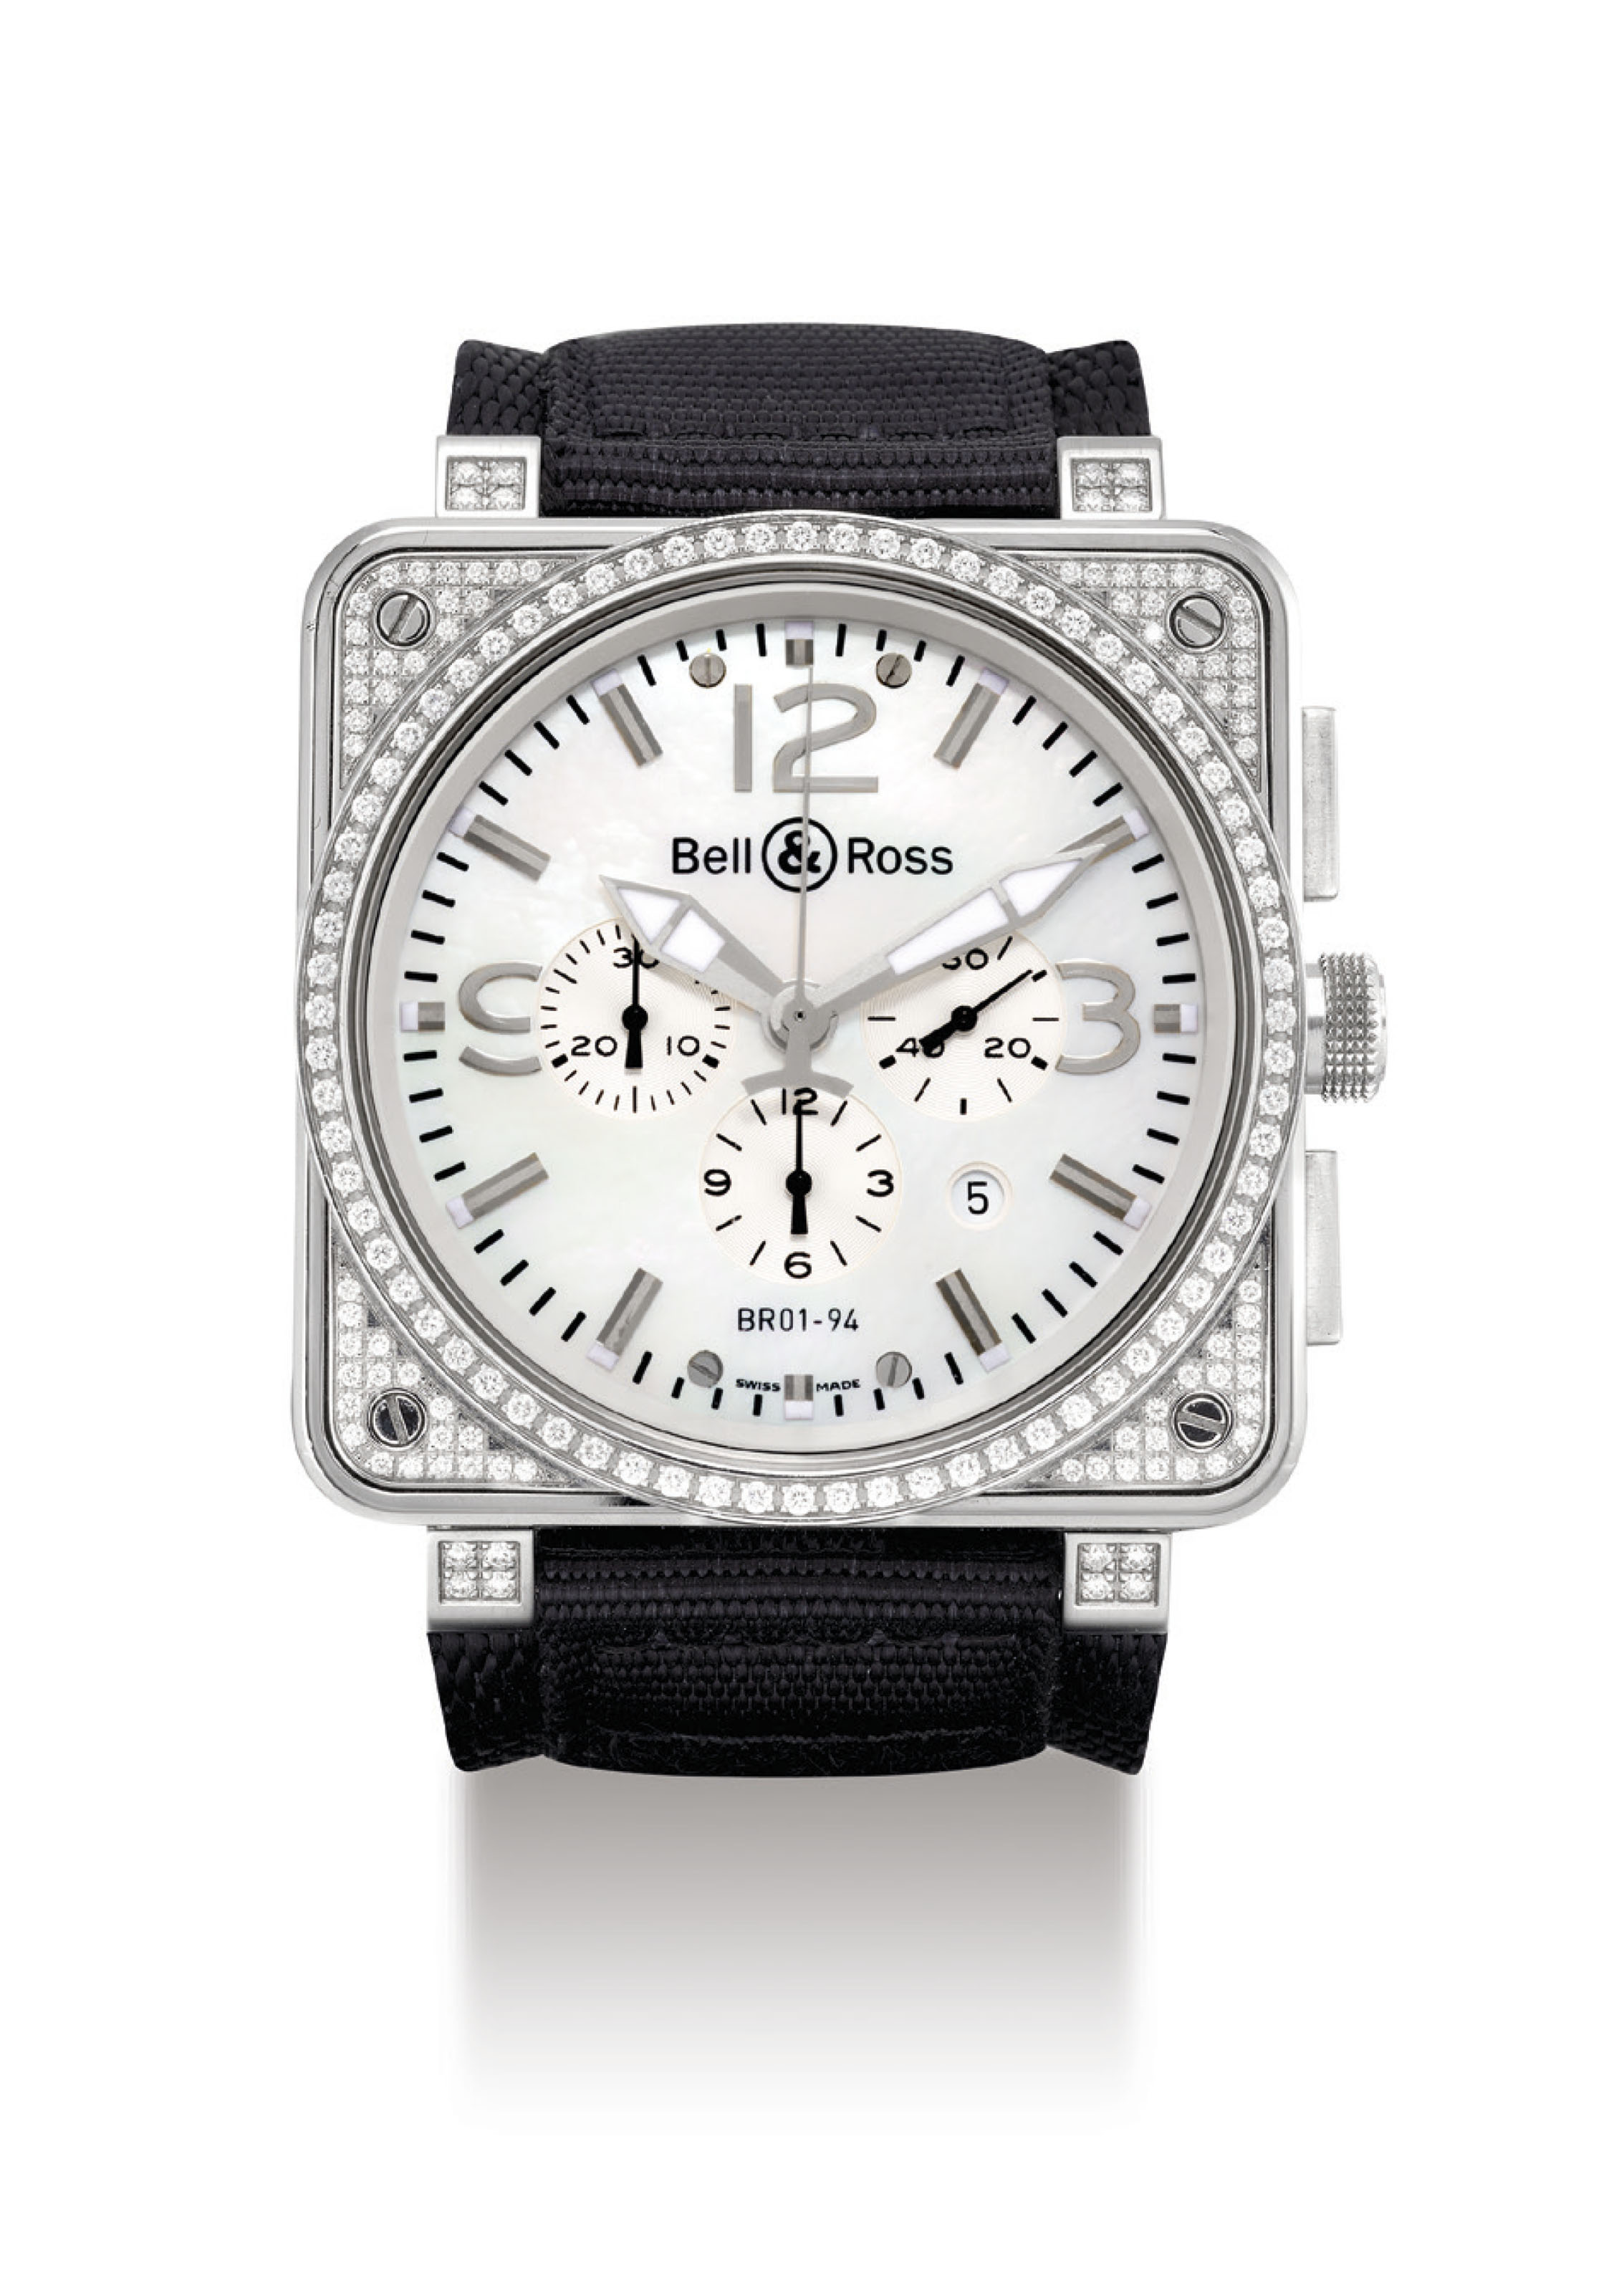 BELL & ROSS. A STAINLESS STEEL AND DIAMOND-SET SQUARE AUTOMATIC CHRONOGRAPH WRISTWATCH WITH DATE AND MOTHER-OF-PEARL DIAL